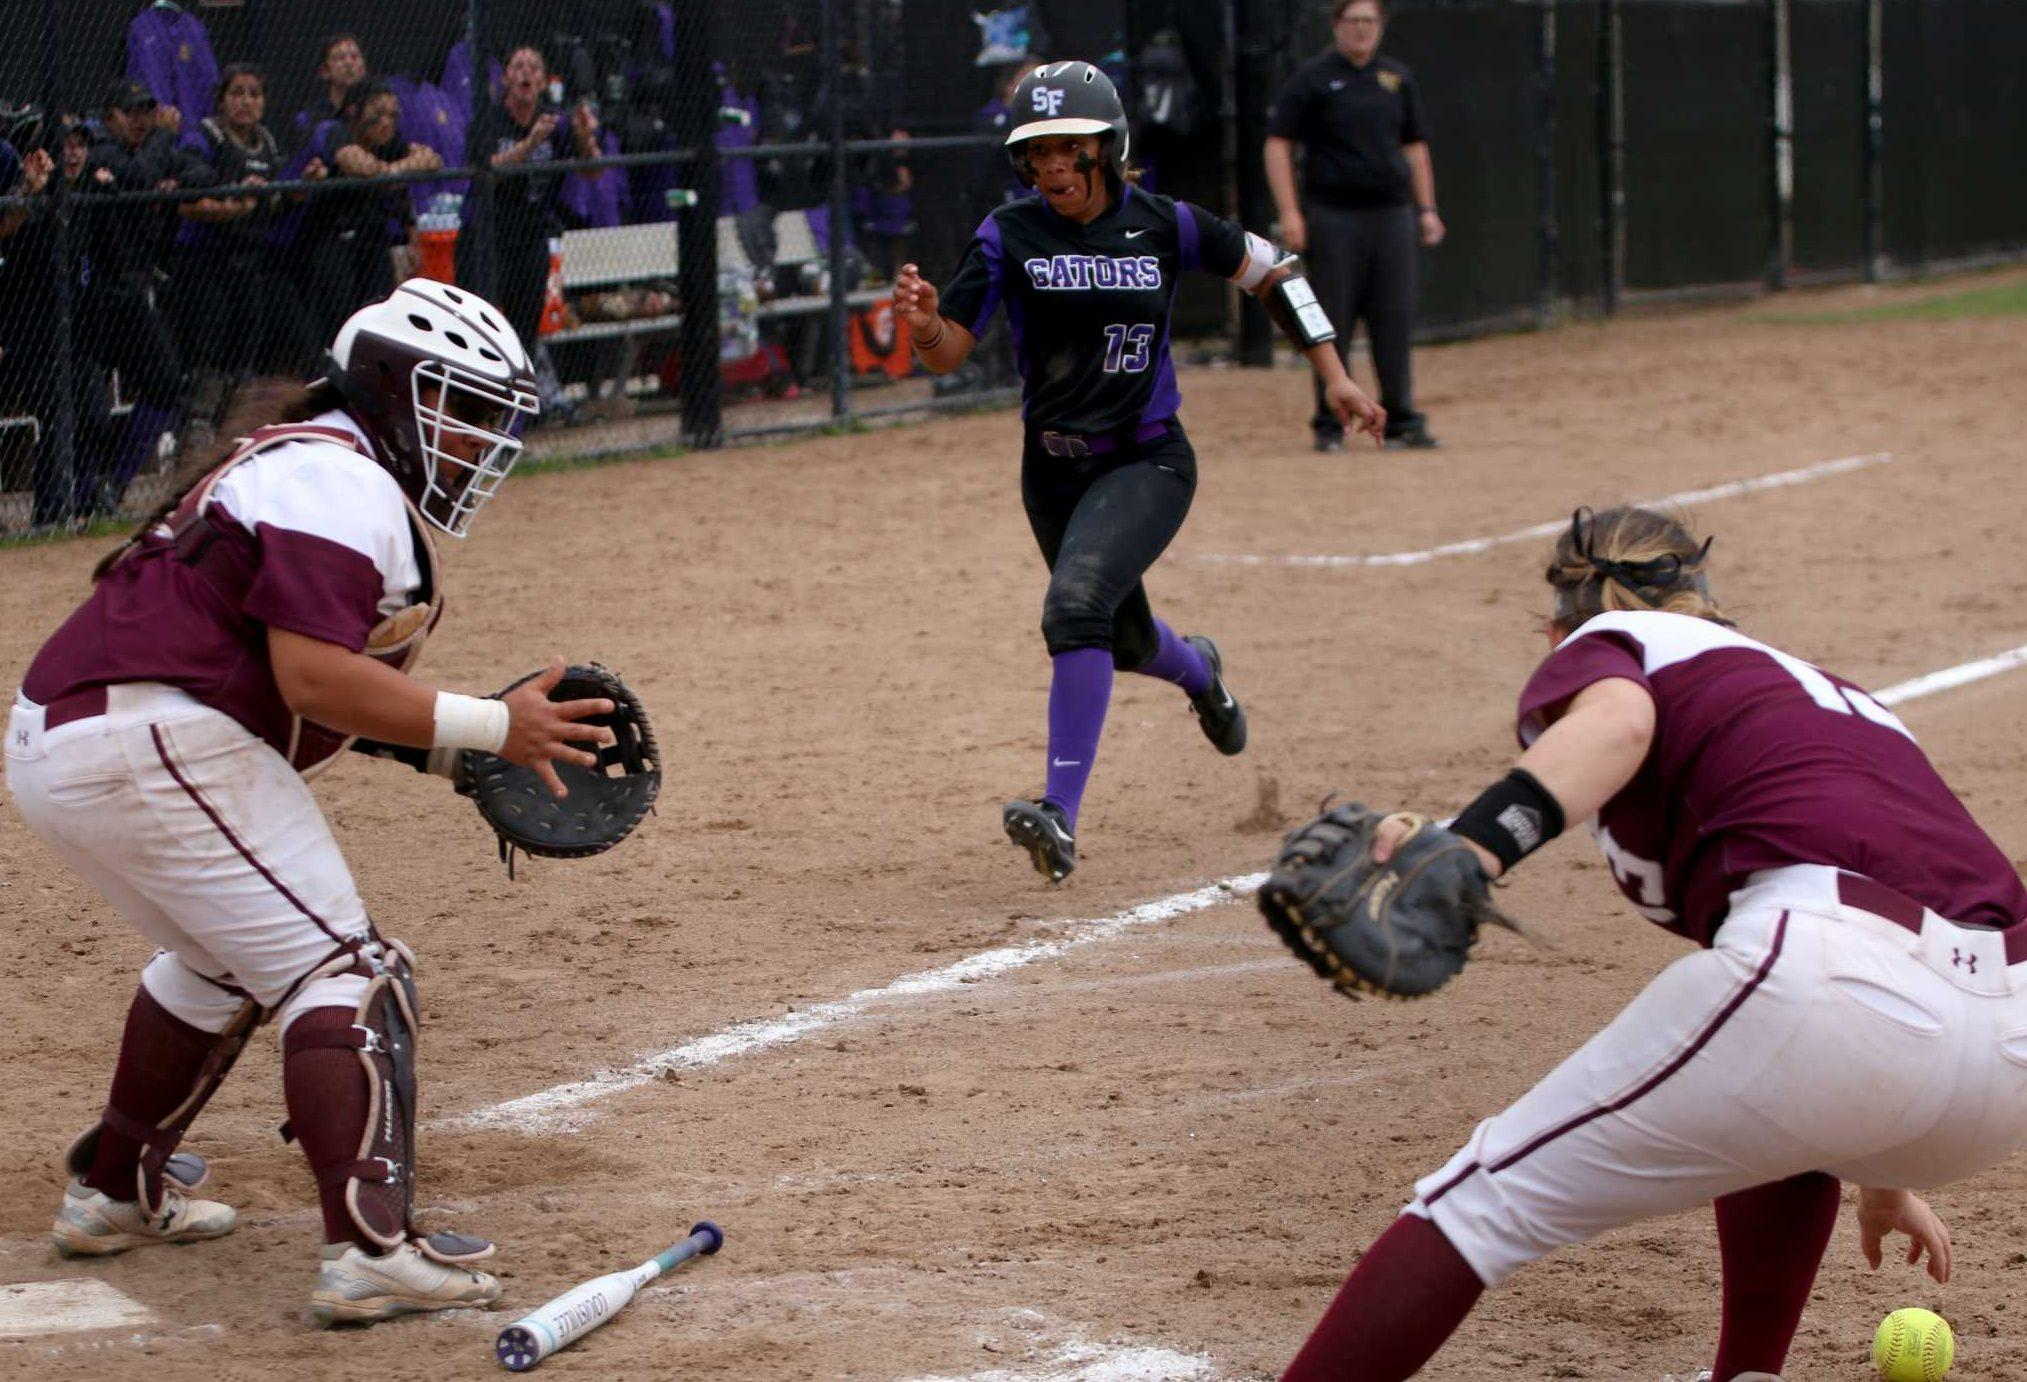 SF State Sophomore, INF, Madison Collins (13), runs towards home base as the gators rally to come back from two runs in the bottom of the 4th against the Chico State Wildcats at SF State on March. 15, 2017. (Kyler Knox/Xpress)